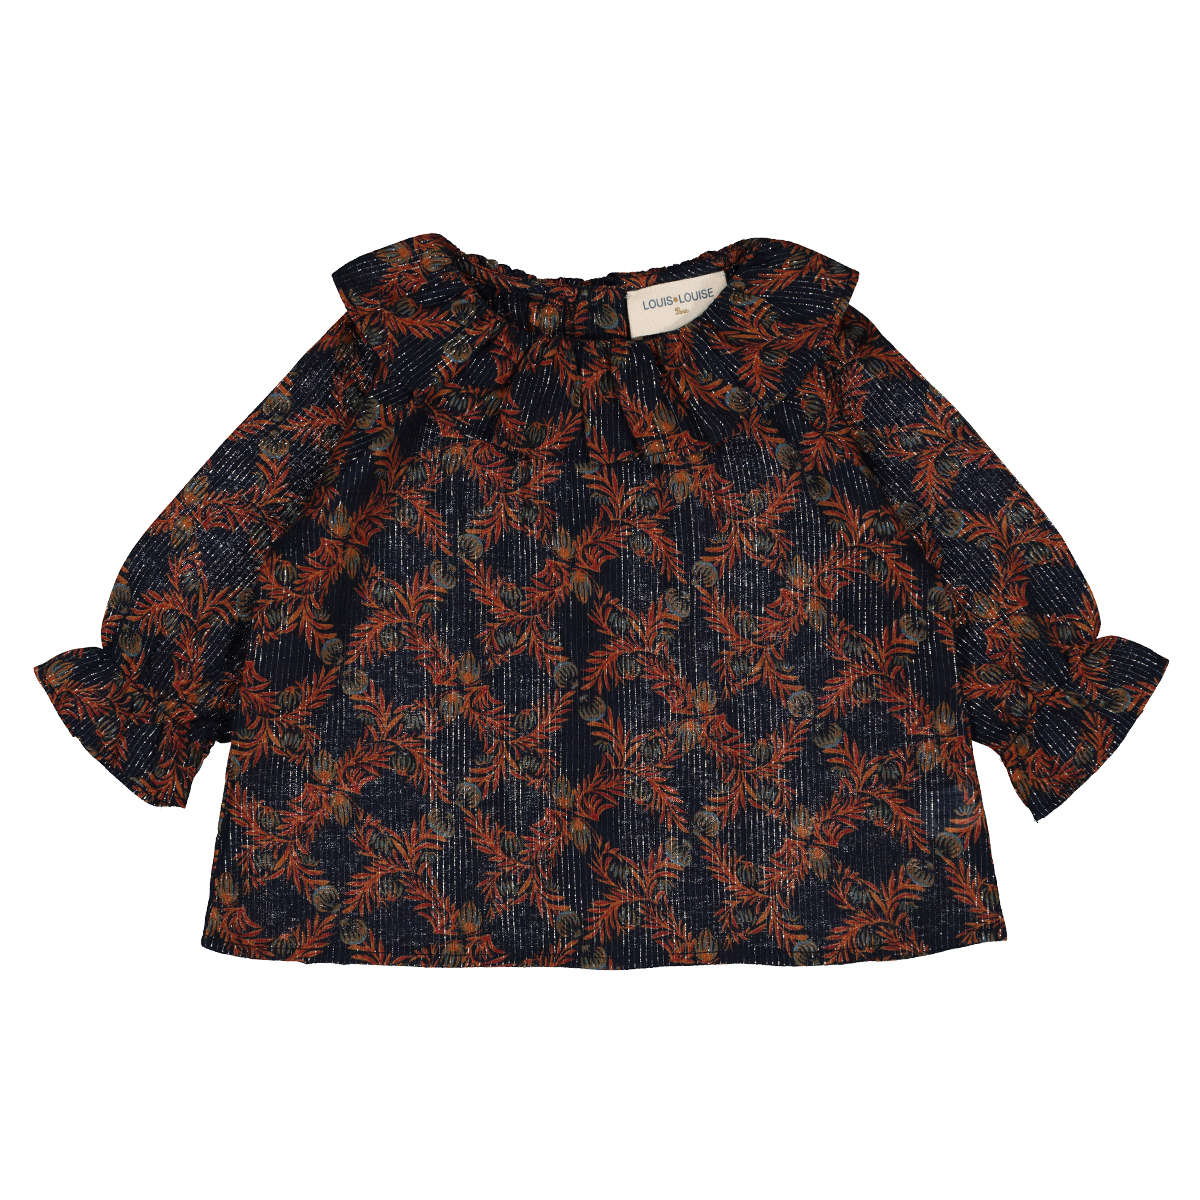 Louis Louise Lilie Tunic in Exotic Flower Print